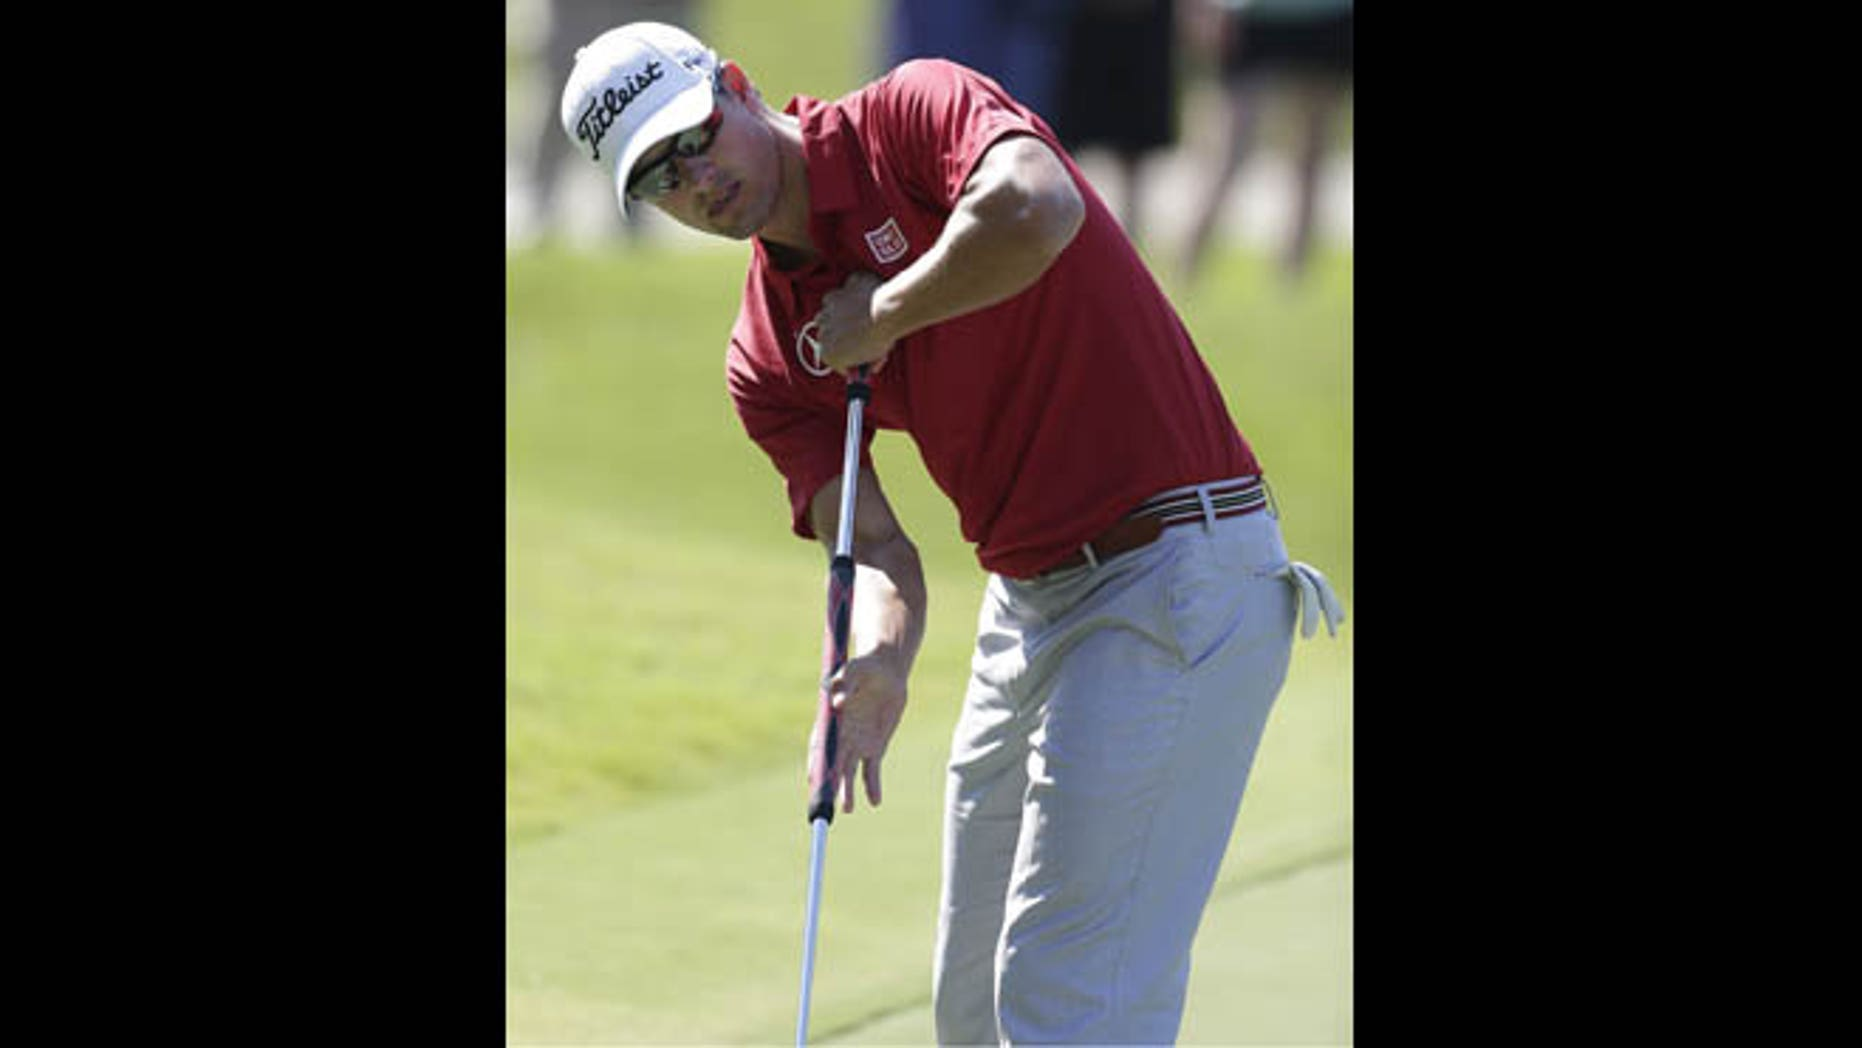 May 9, 2013: Adam Scott of Australia is seen putting on the 15th green during the first round of The Players championship golf tournament at TPC Sawgrass in Ponte Vedra Beach, Fla. Golf's governing bodies have adopted a new rule that outlaws the putting stroke used by four of the last six major champions. The Royal & Ancient Golf Club and U.S. Golf Association announced Tuesday, May 21, 2013 that Rule 14-1b would start in 2016. The new rule will make it illegal to anchor the club against the body when making a golf stroke.